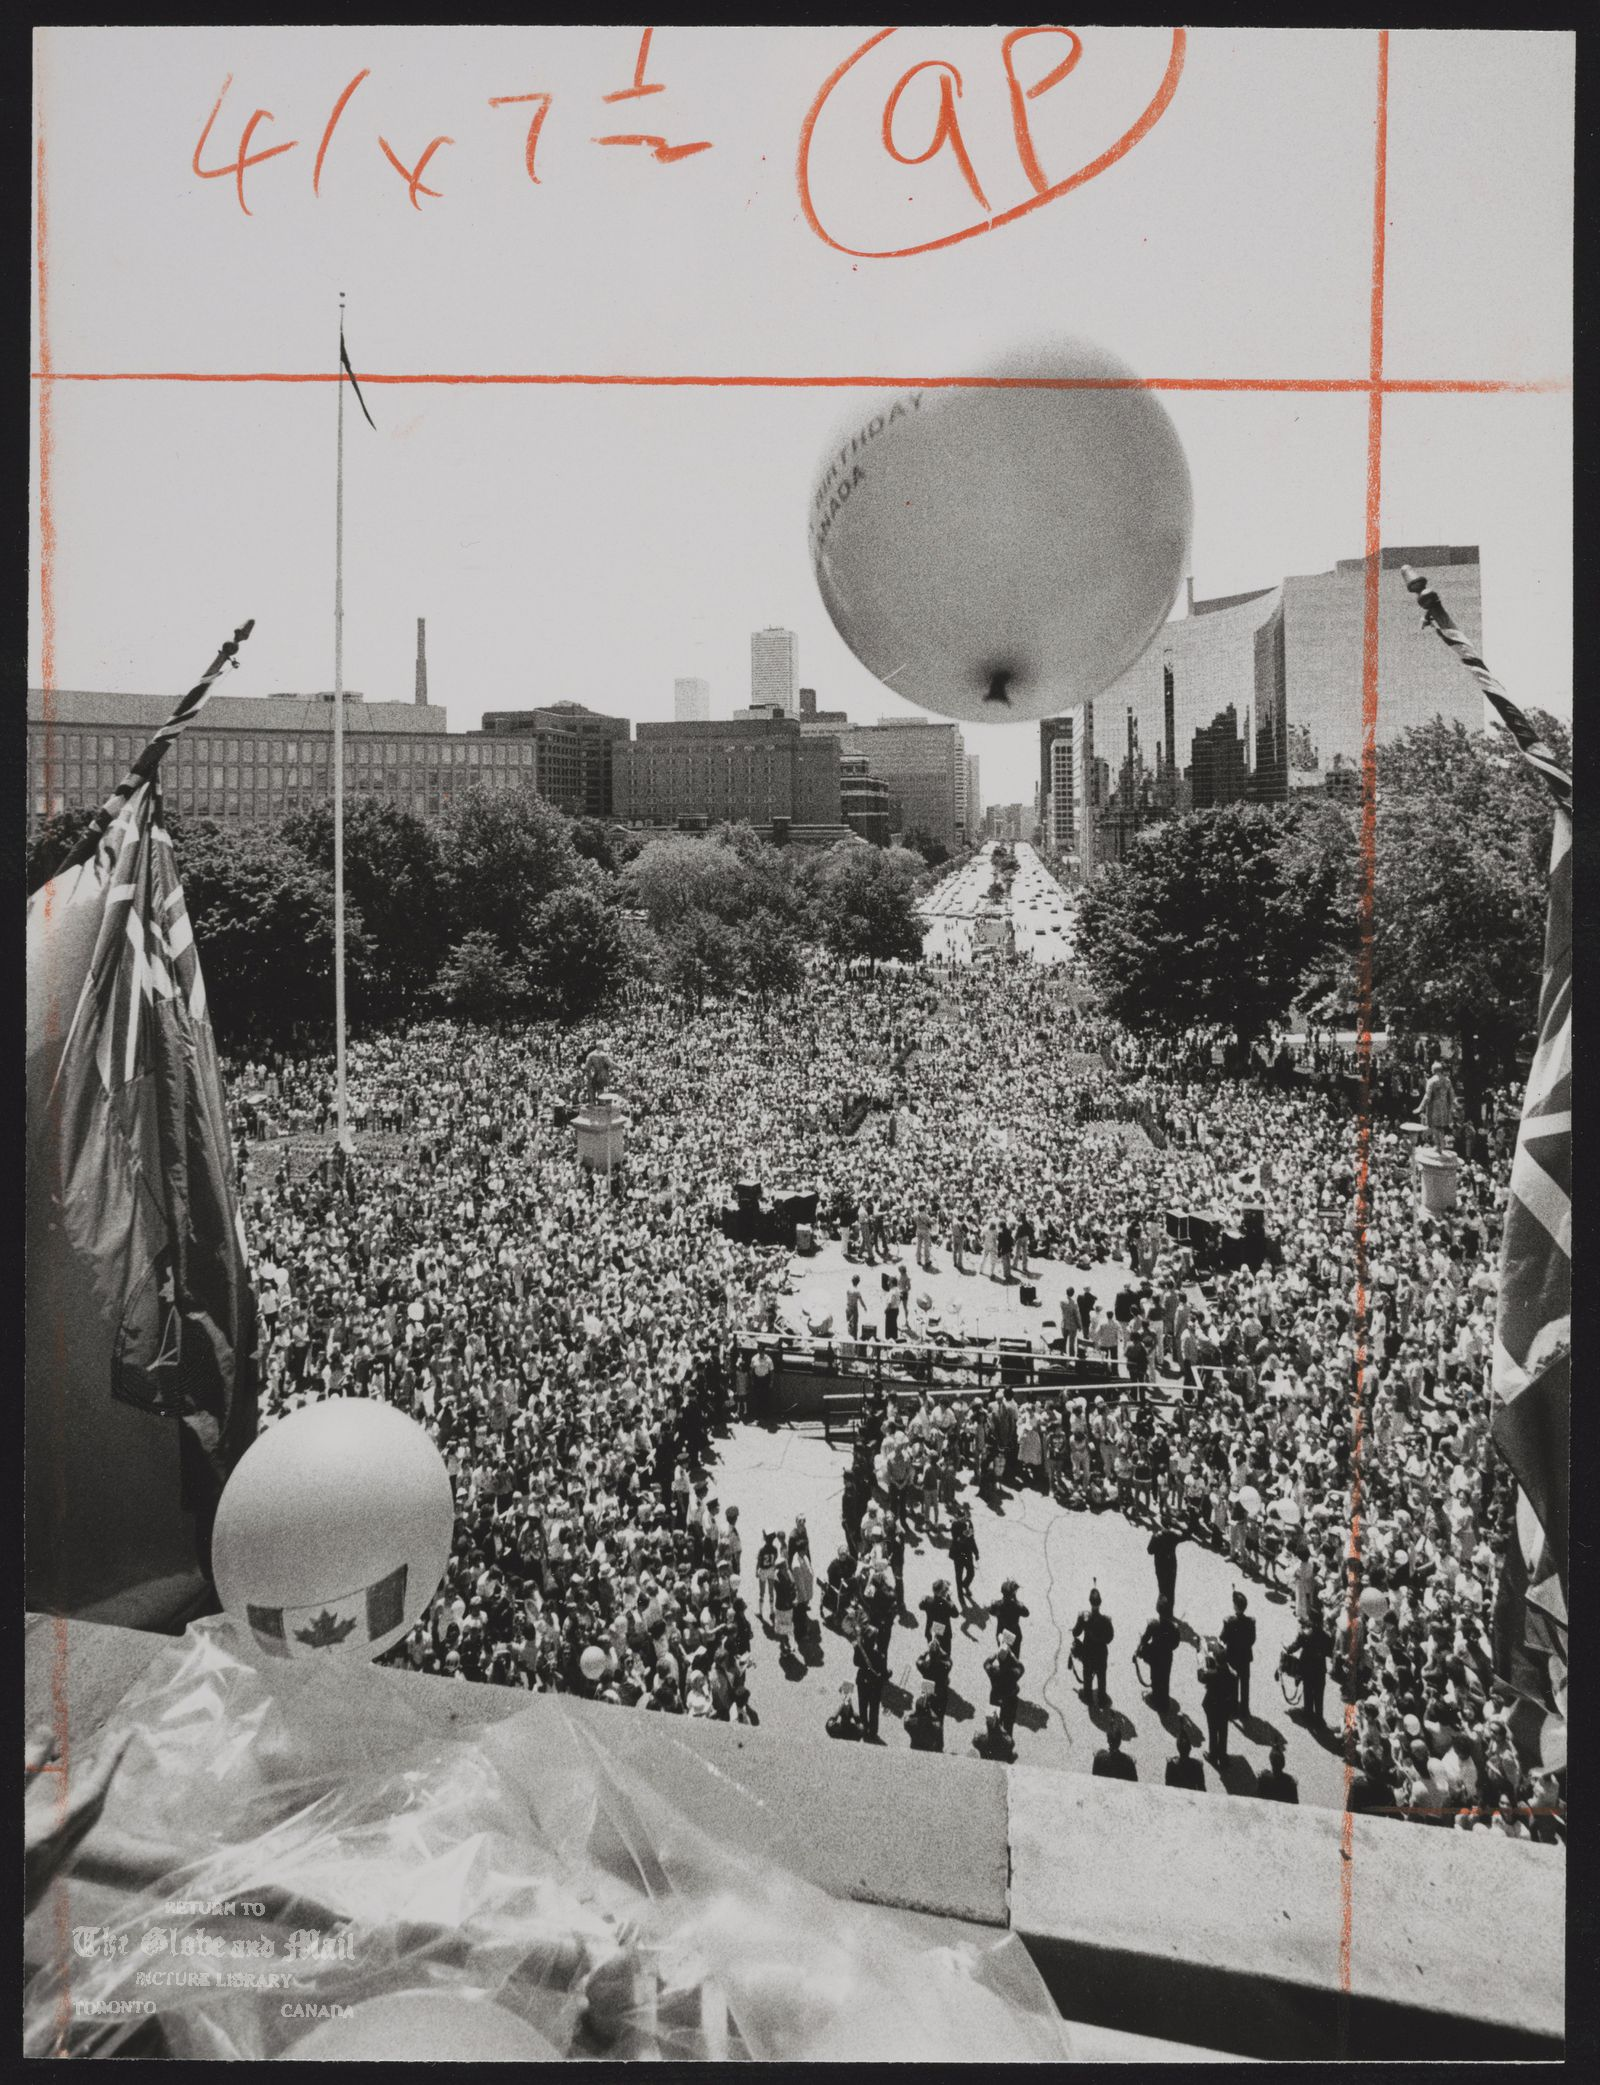 DOMINION DAY Balloons are released from the Ontario Legislature balcony as thousands of people arrive to join the Dominion Day celebrations for Canada's 115th birthday yesterday, [July 1, 1982].